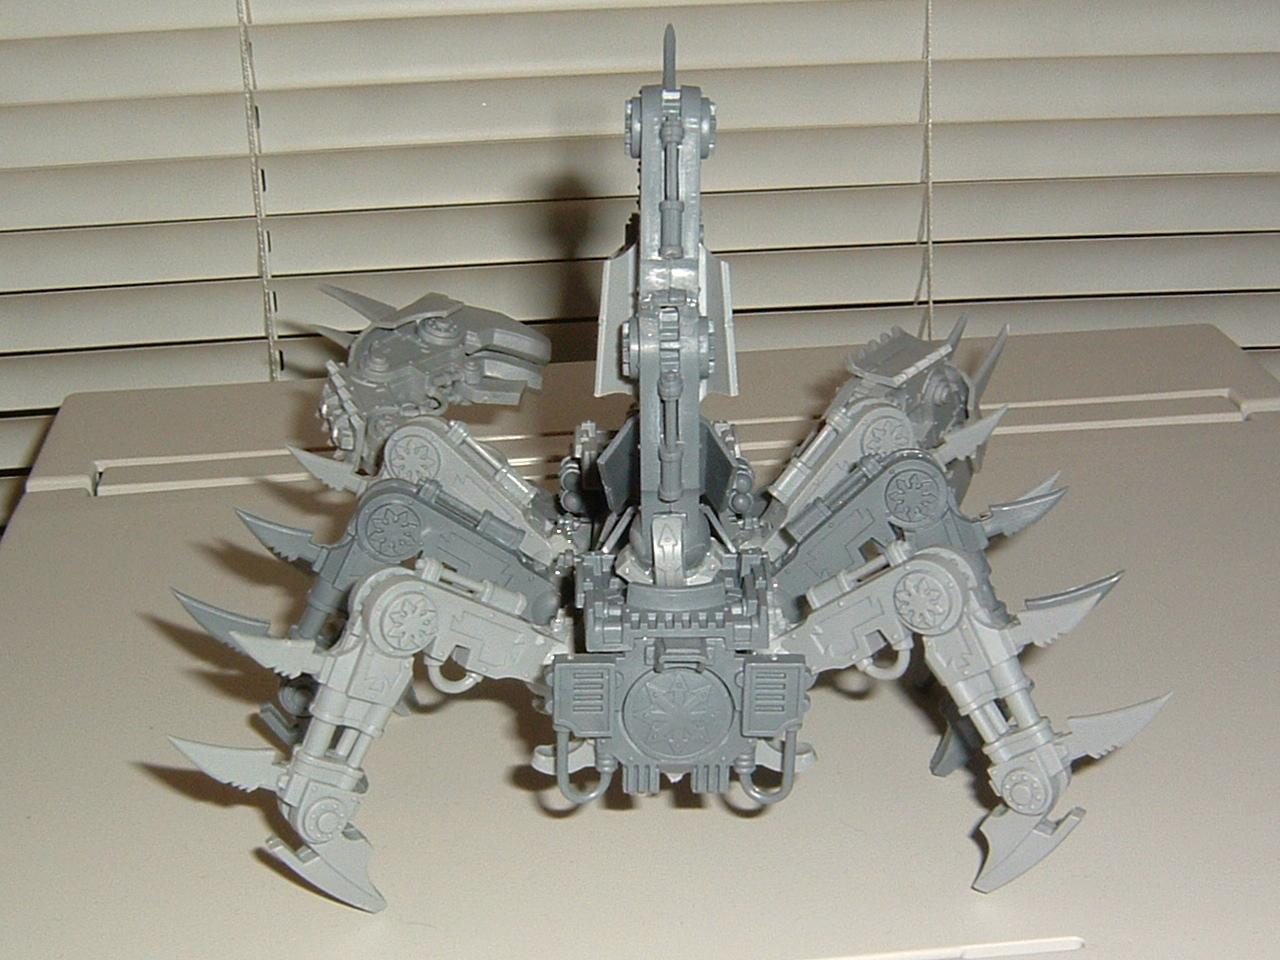 Brass Scorpion, Chaos, Defiler, Warhammer 40,000, Work In Progress